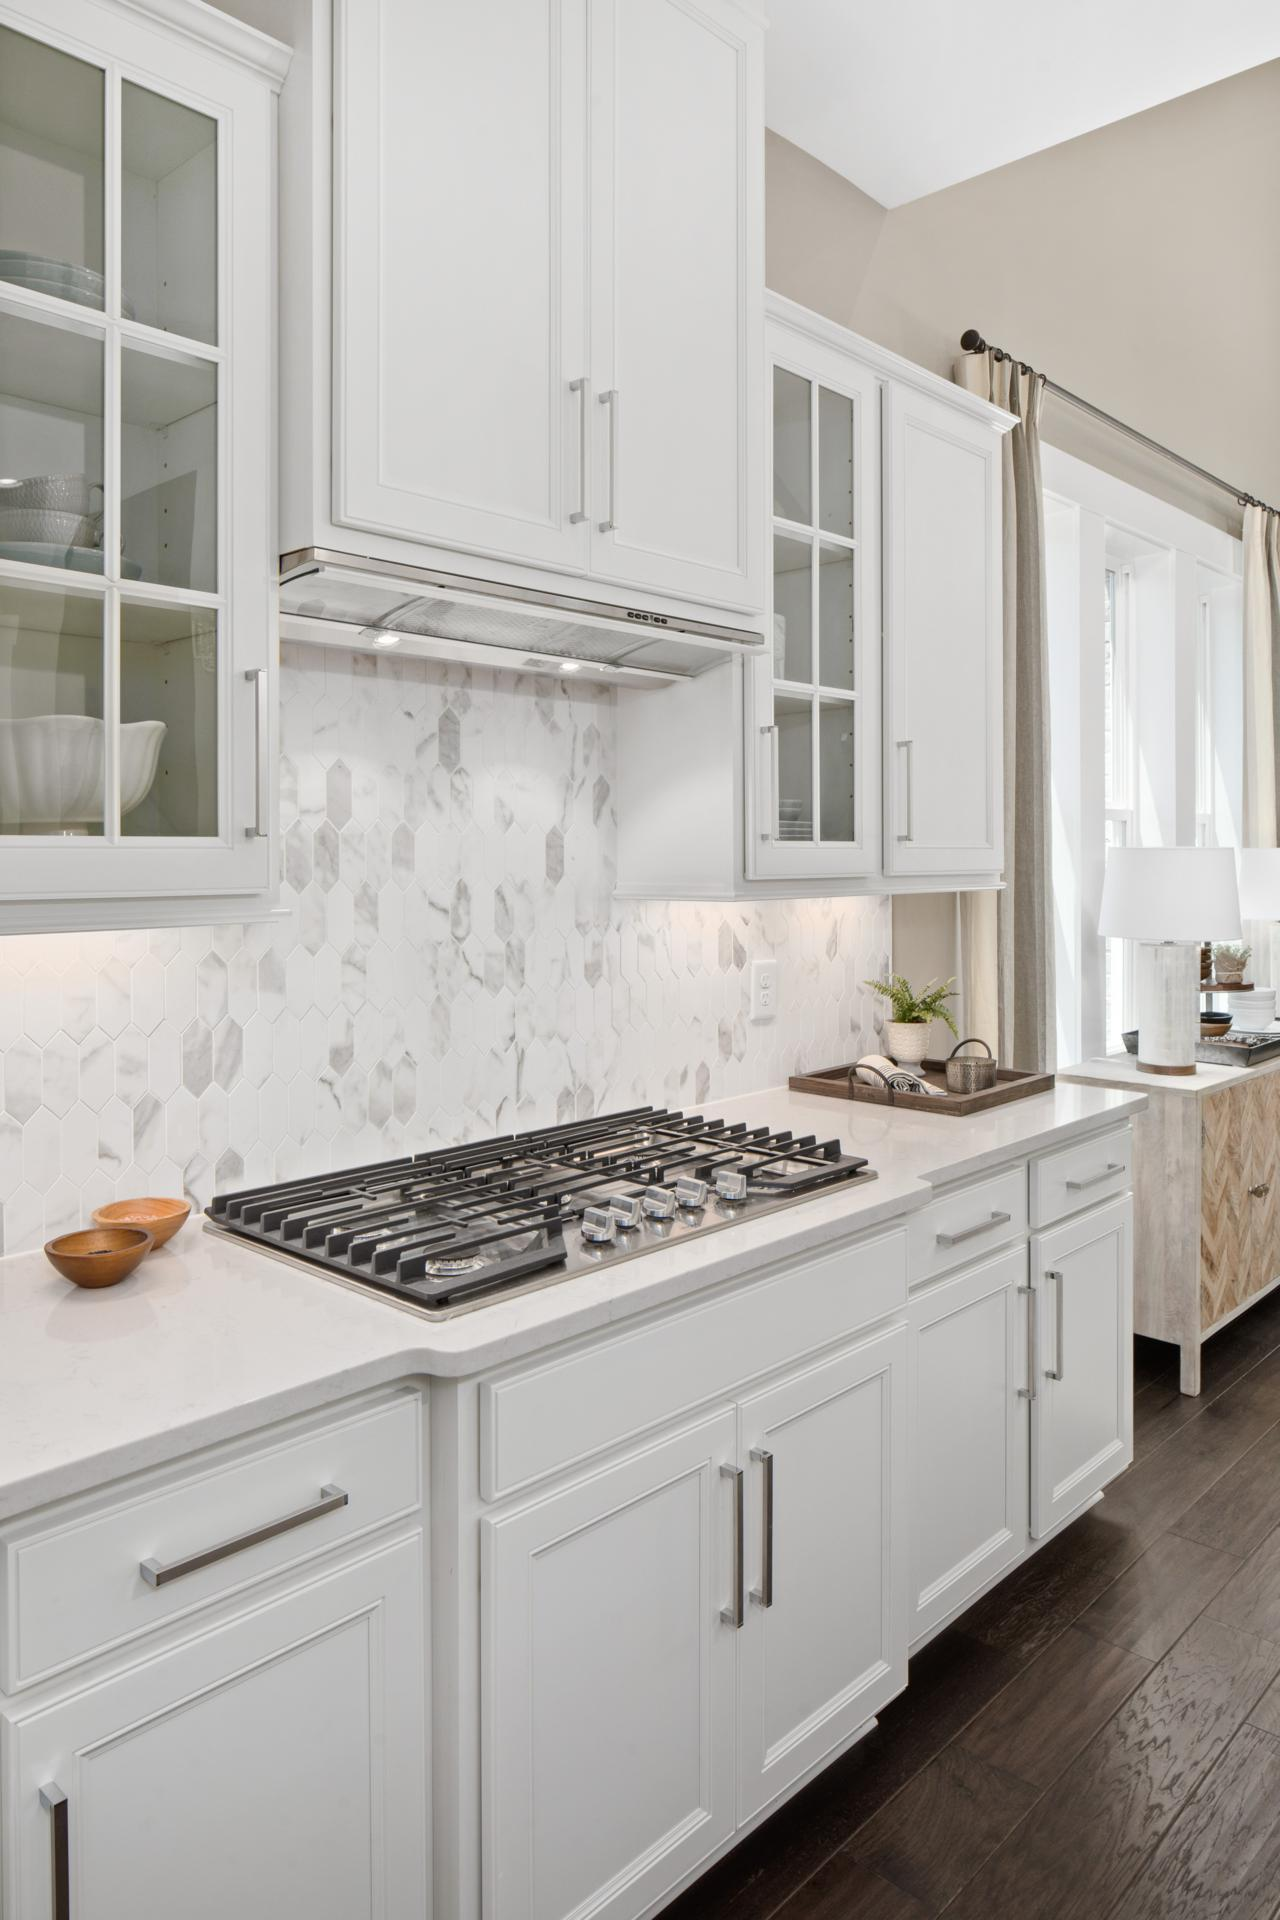 Kitchen featured in the Everly By Drees Homes in Nashville, TN